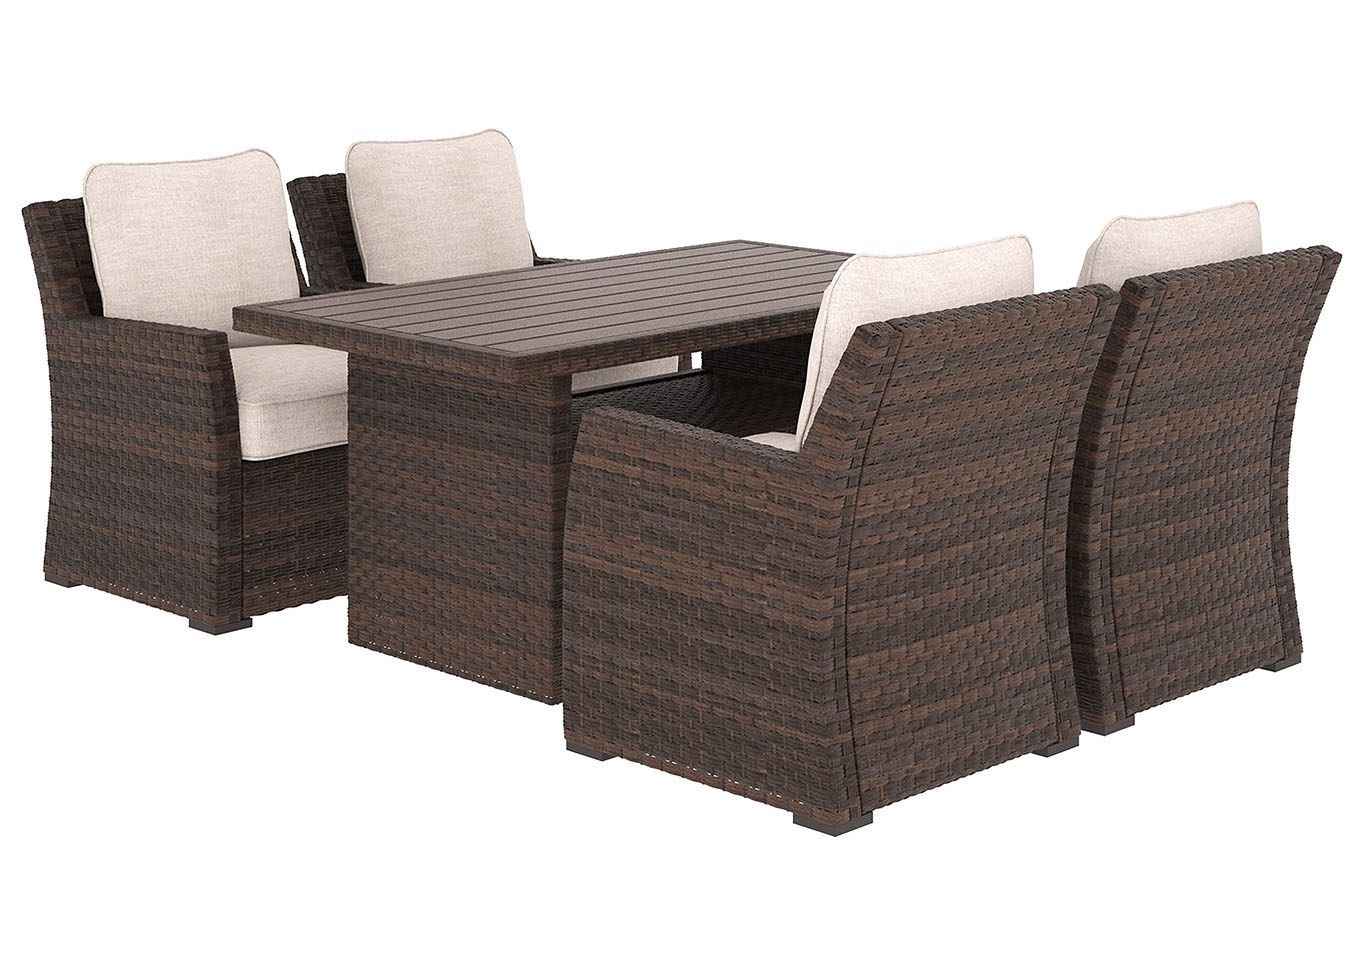 Salceda Beige/Brown Rectangular Dining Table w/4 Lounge Chair Cushion,Outdoor By Ashley